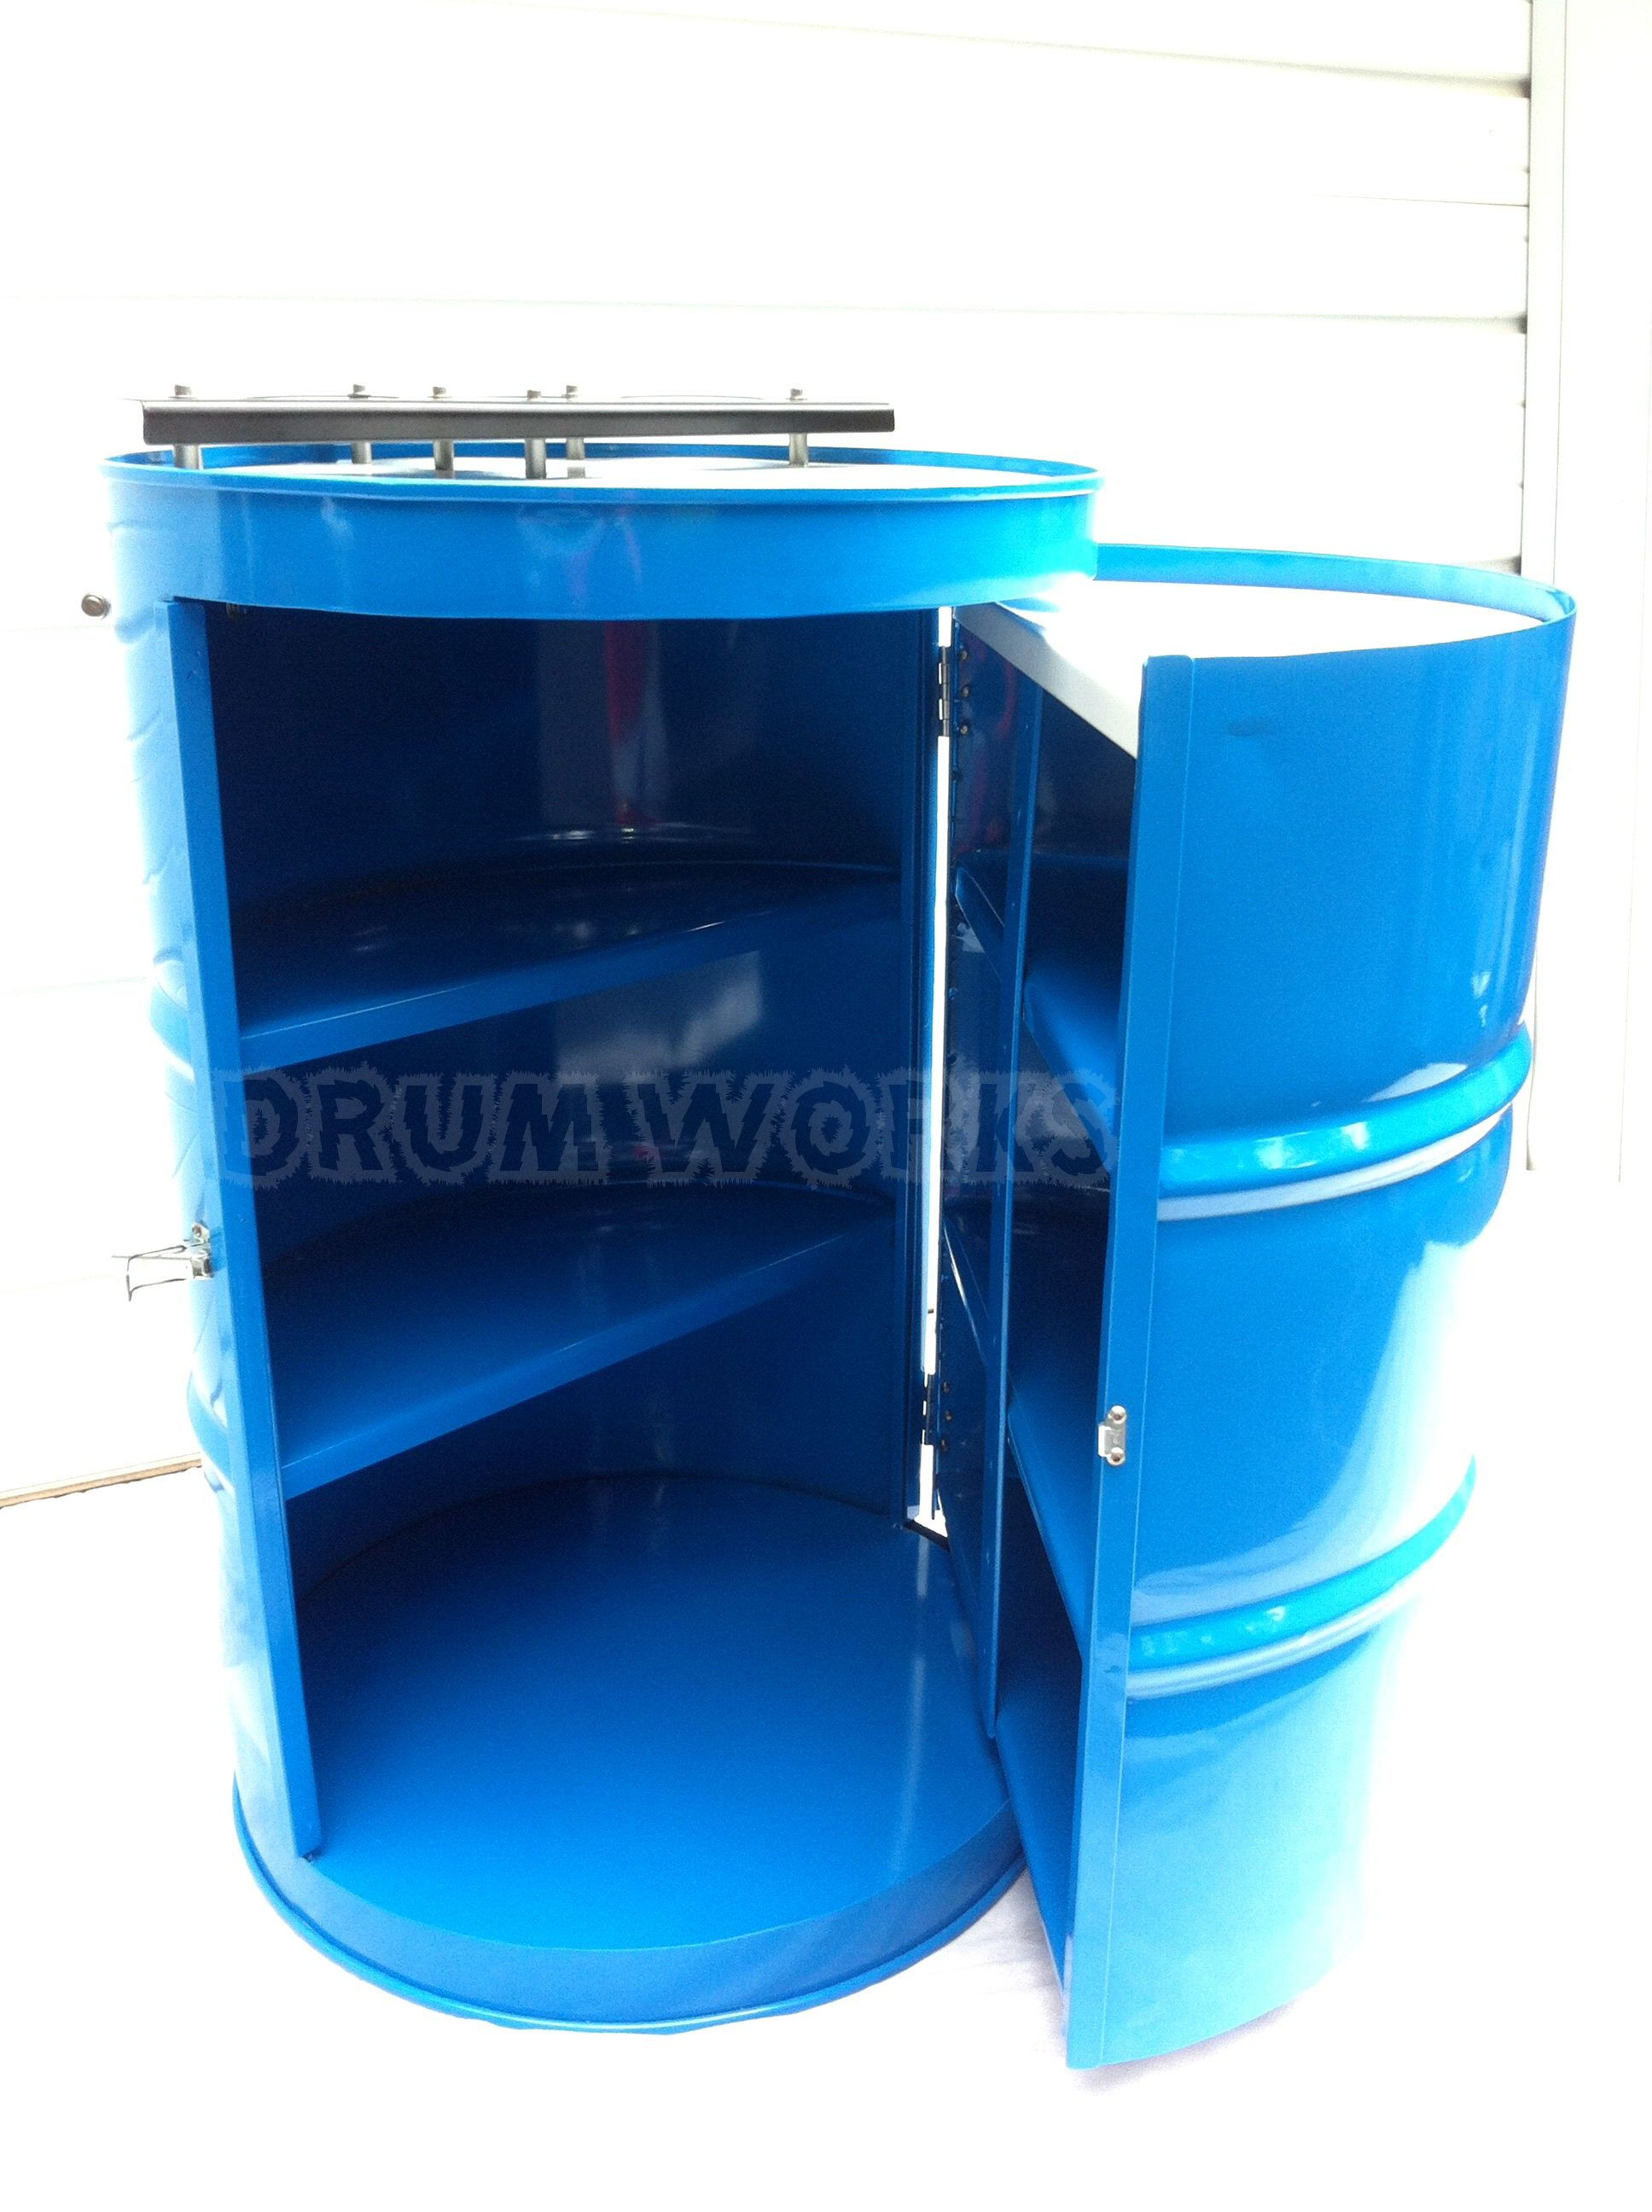 Recycled 55 Gallon Steel Drum Made Into Portable Bar Powder Coated In Panther Colors Of Teal With White Black And Si 55 Gallon Steel Drum Oil Drum Steel Drum